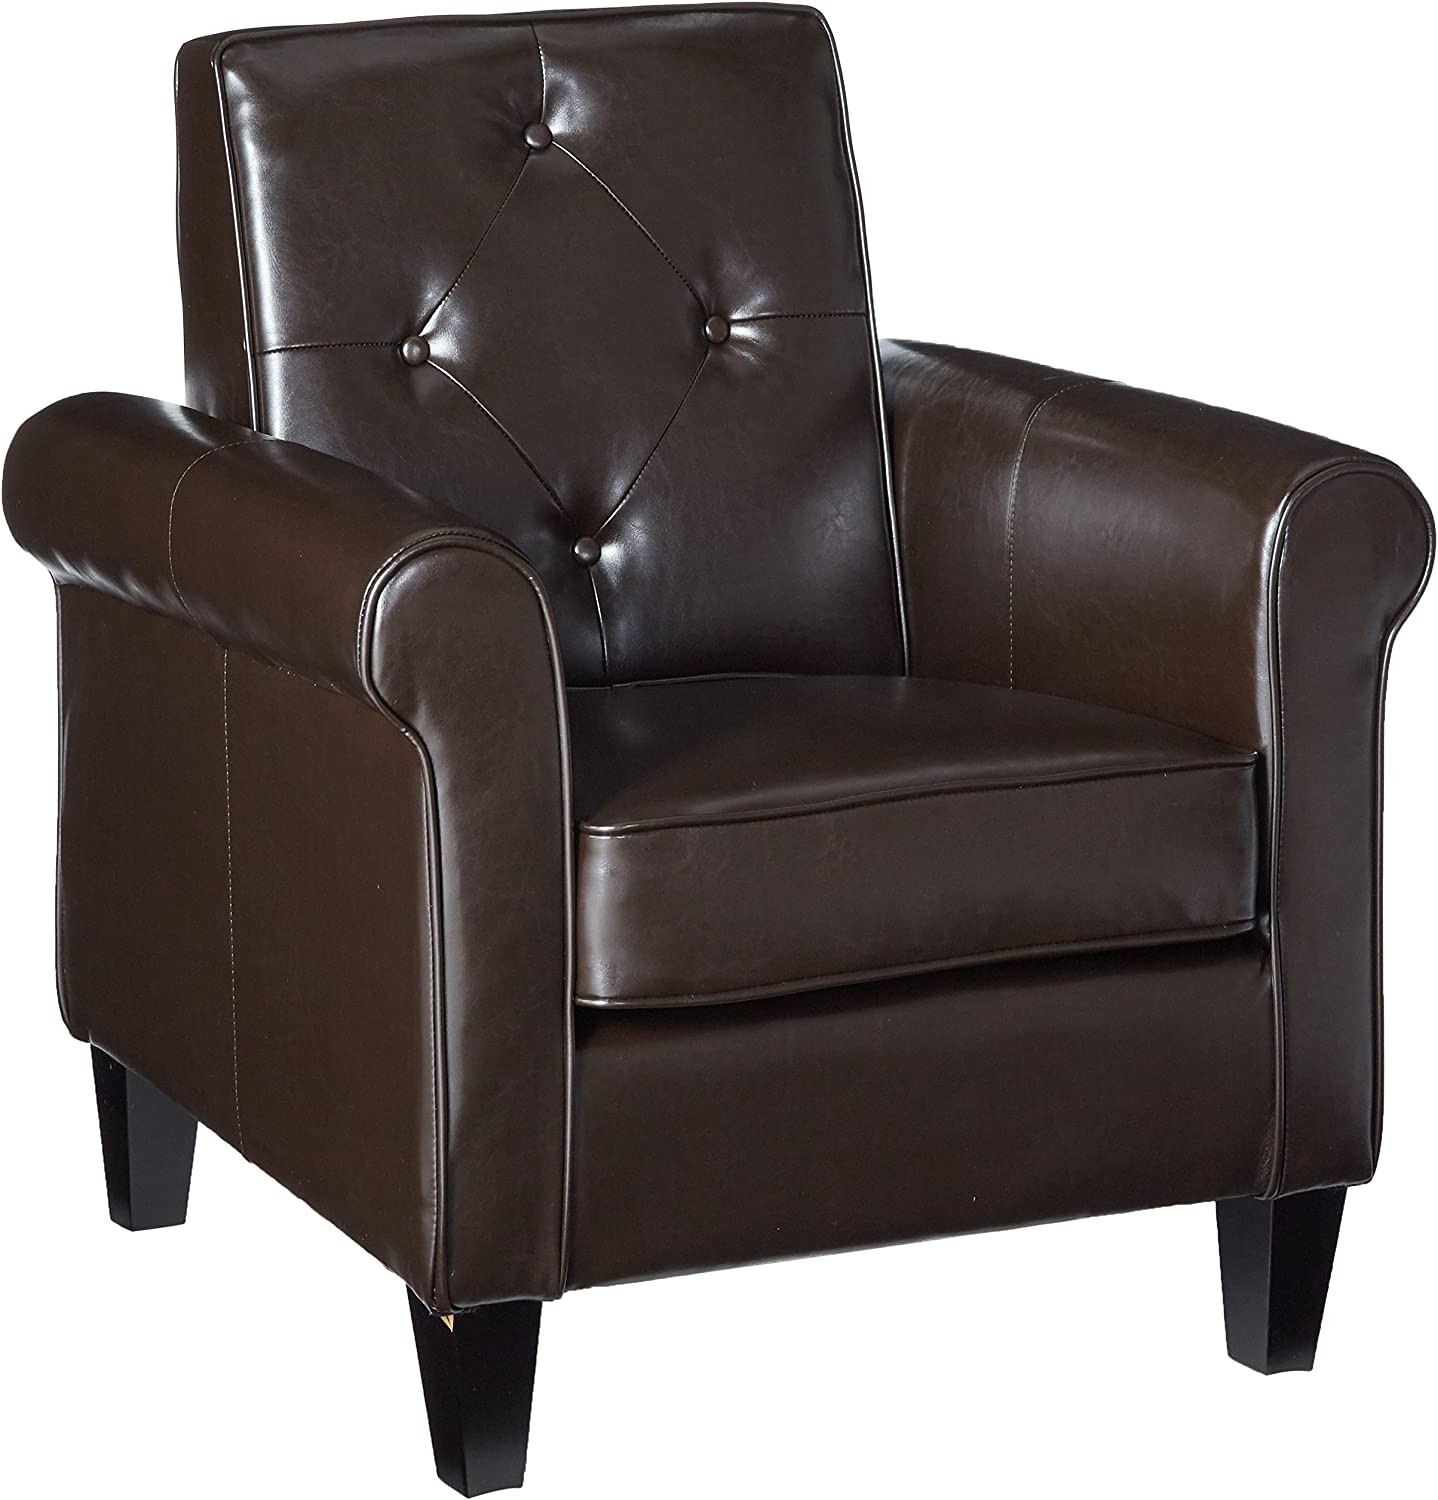 Christopher Knight Home 238657 CKH Isaac Tufted Brown Leather Club Chair, Chocolate